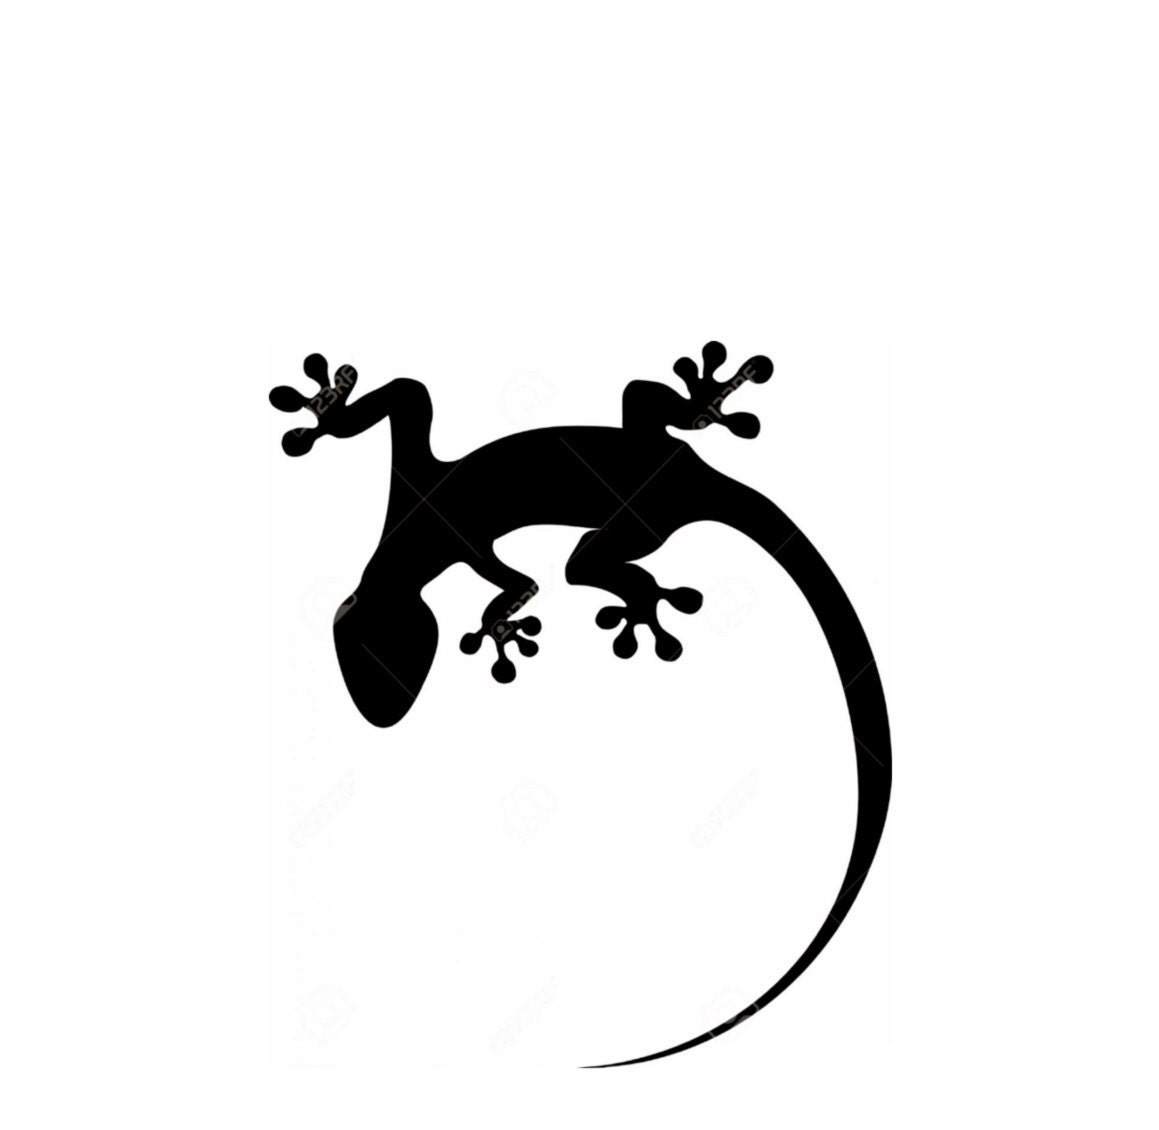 Lizard Gecko Stencil Made From 4 Ply Mat Board Choose A